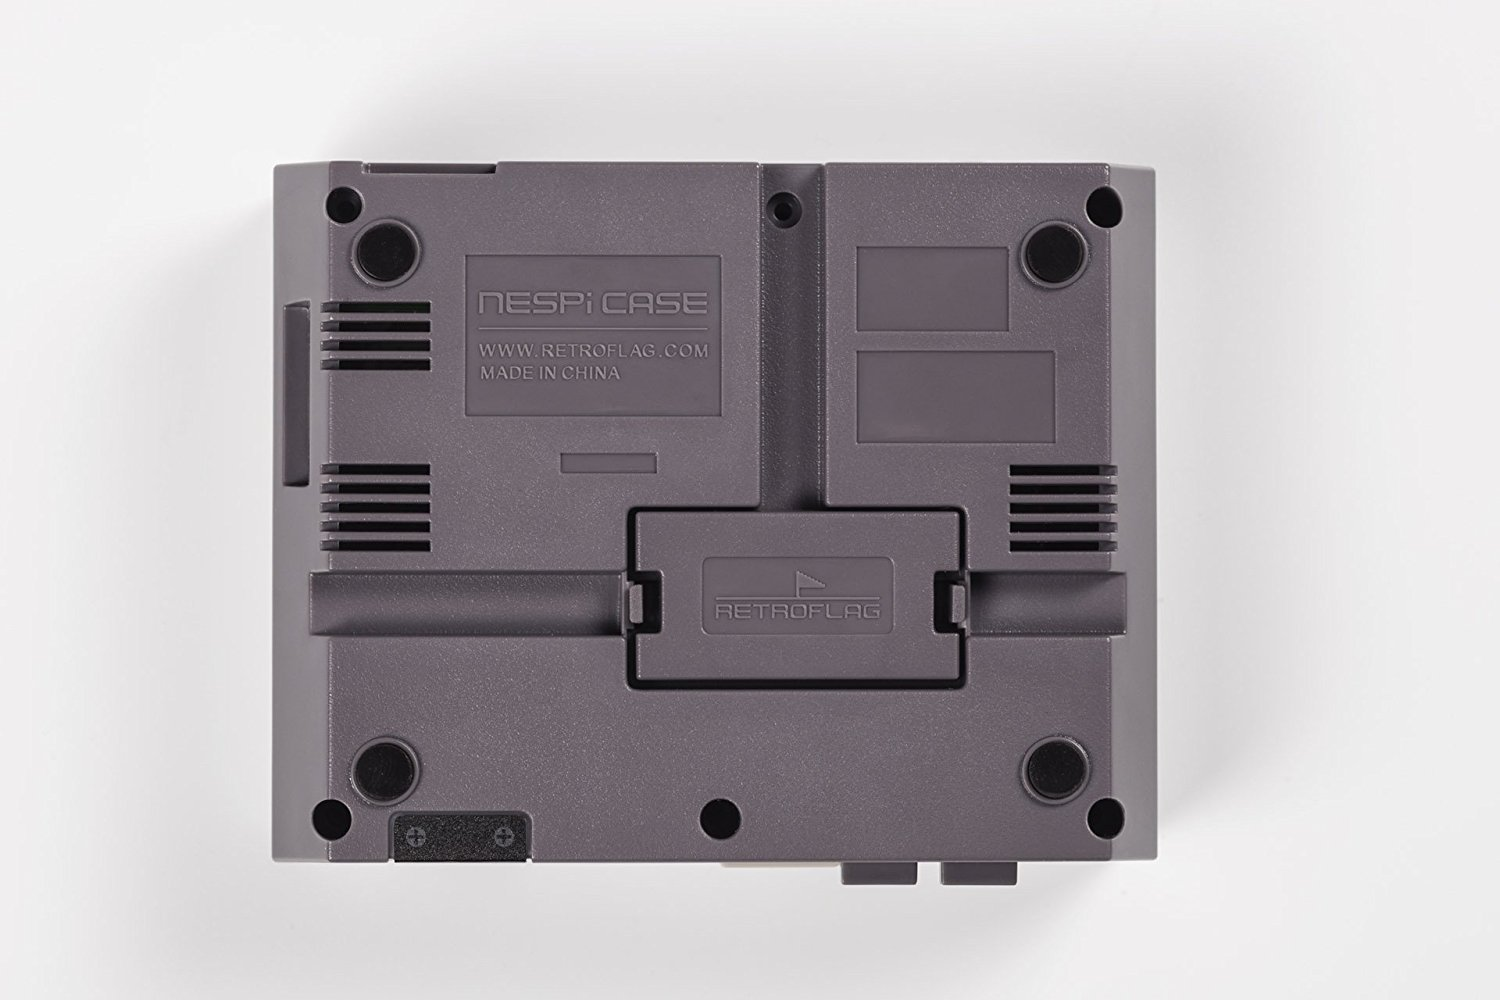 TechIntheBox NESPi CASE+,RetroFlag NES CASE functional POWER and RESET button NESPi Case for Raspberry Pi 3, 2 and B+ by TechIntheBox (Image #5)